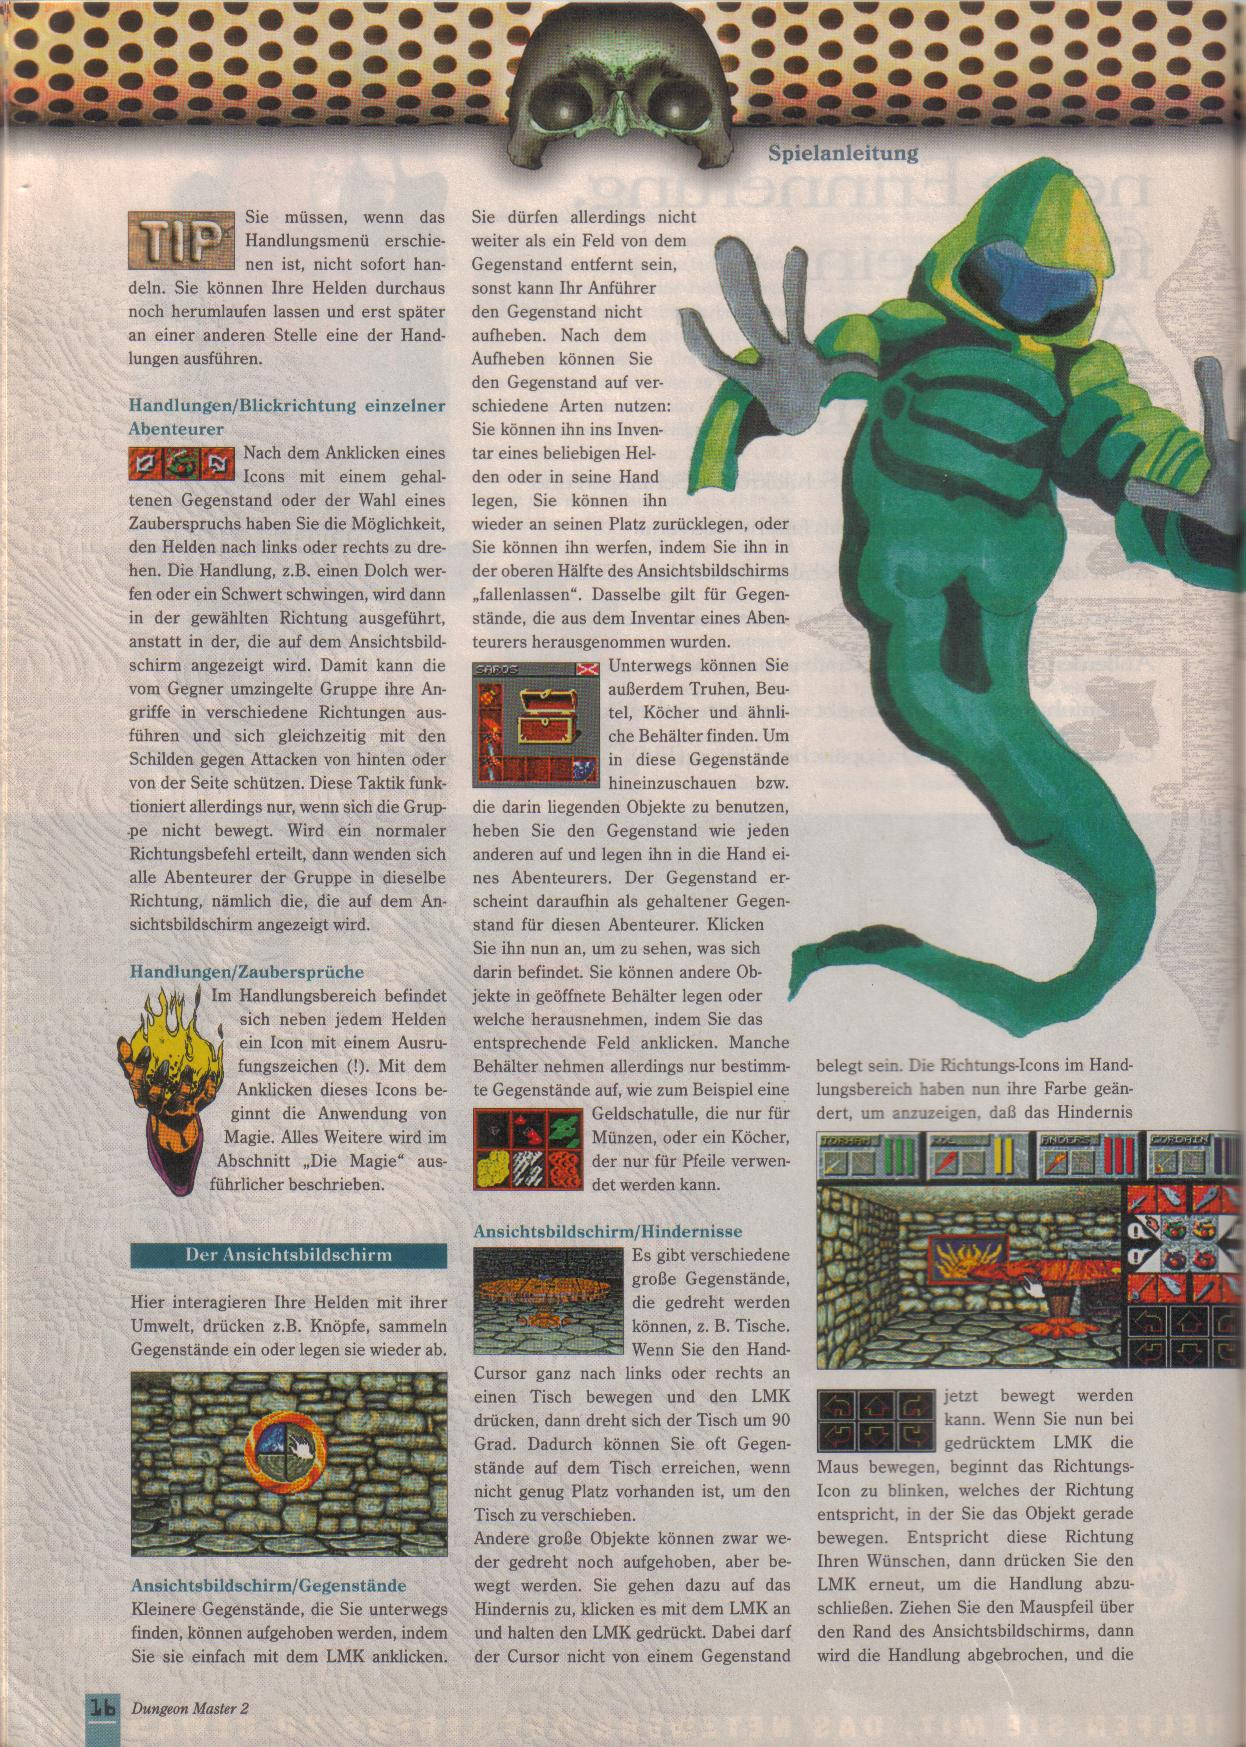 Dungeon Master II for PC (German, Best Seller Games) Page 16